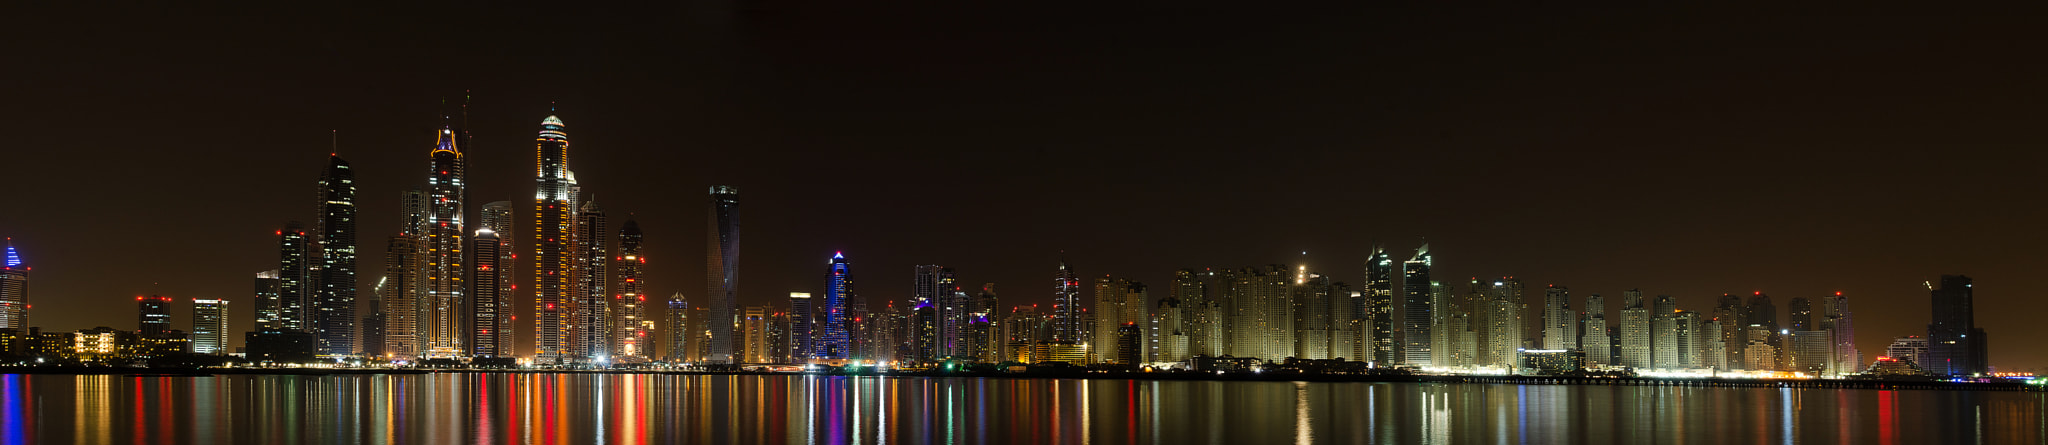 Photograph West Coast Dubai by Roy Aoun Sanchez on 500px